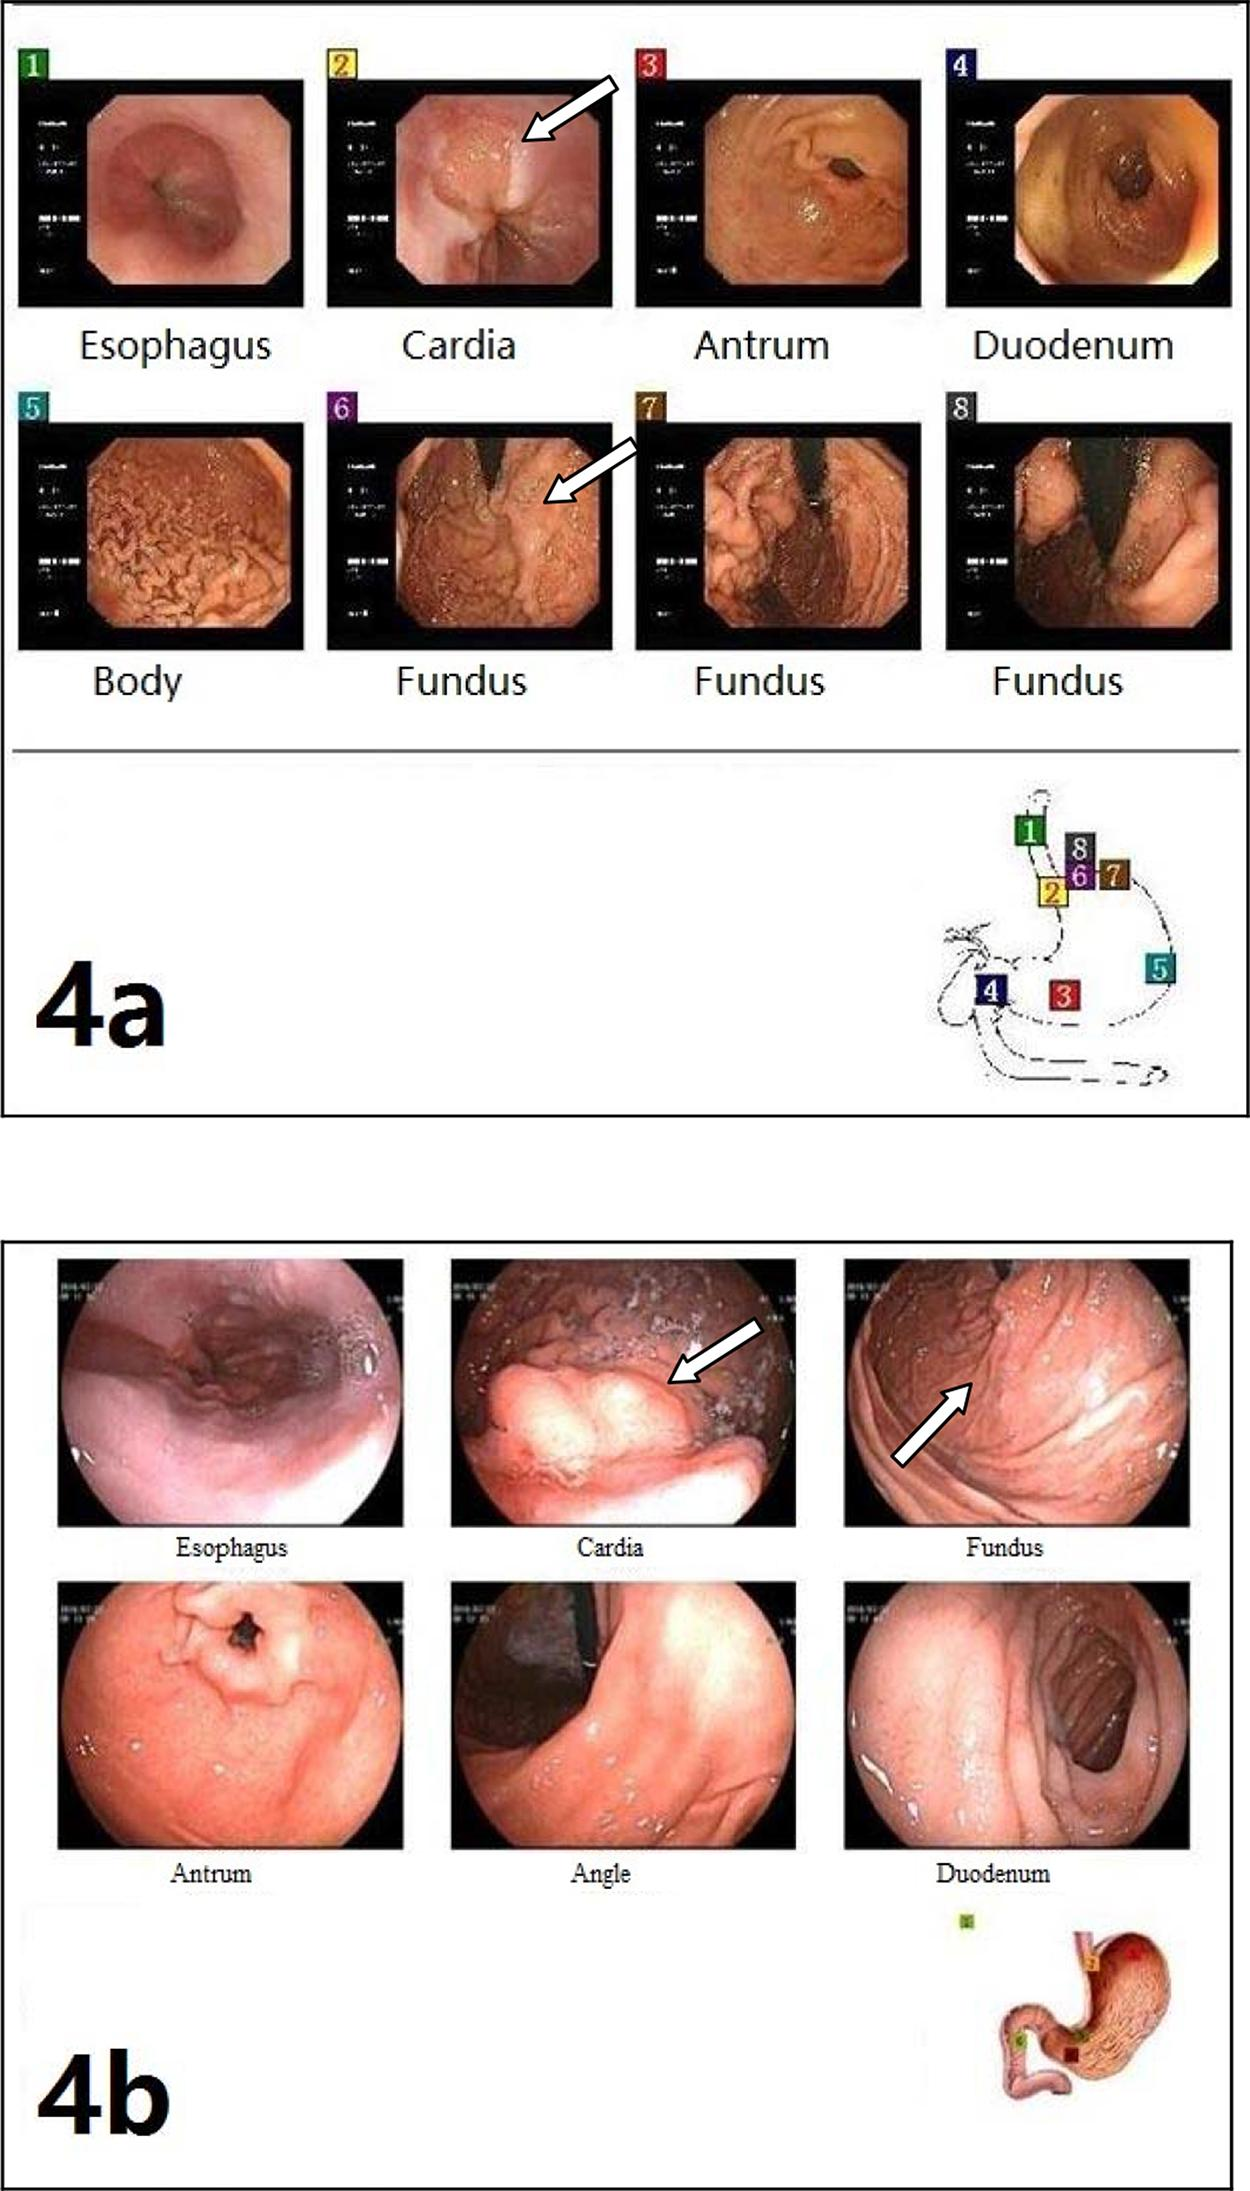 Endoscopy images. a) Preoperative endoscopy showing gastroesophageal varices. b) Endoscopy review of the same patient showing obviously decreased gastric varices but residual esophageal varices postoperatively.